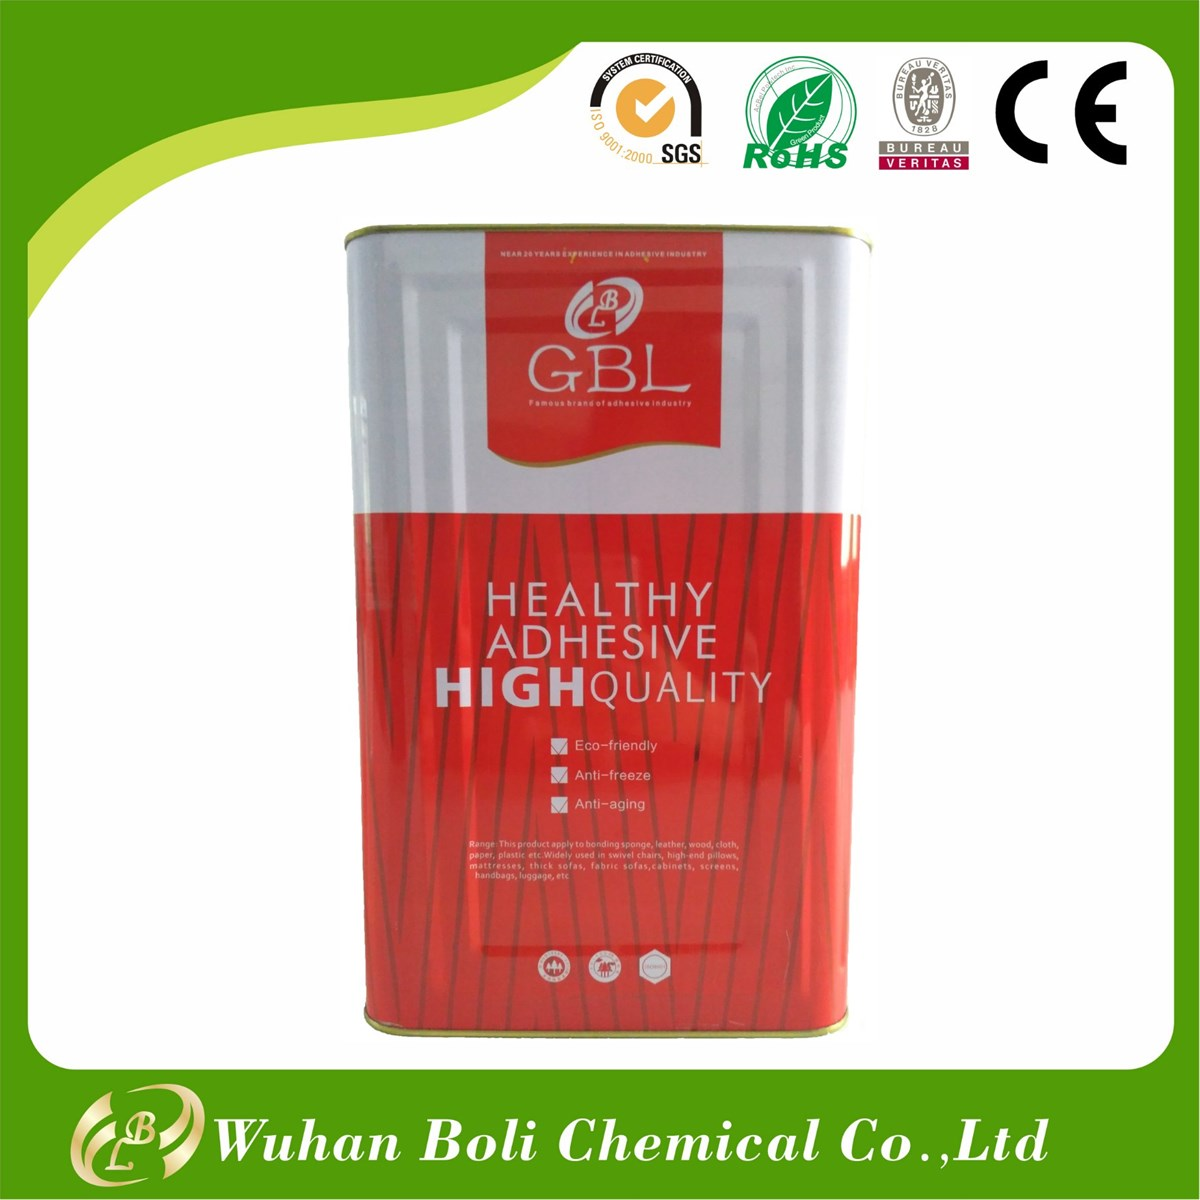 Factory Price Economic Sbs Spray Adhesive Glue From China